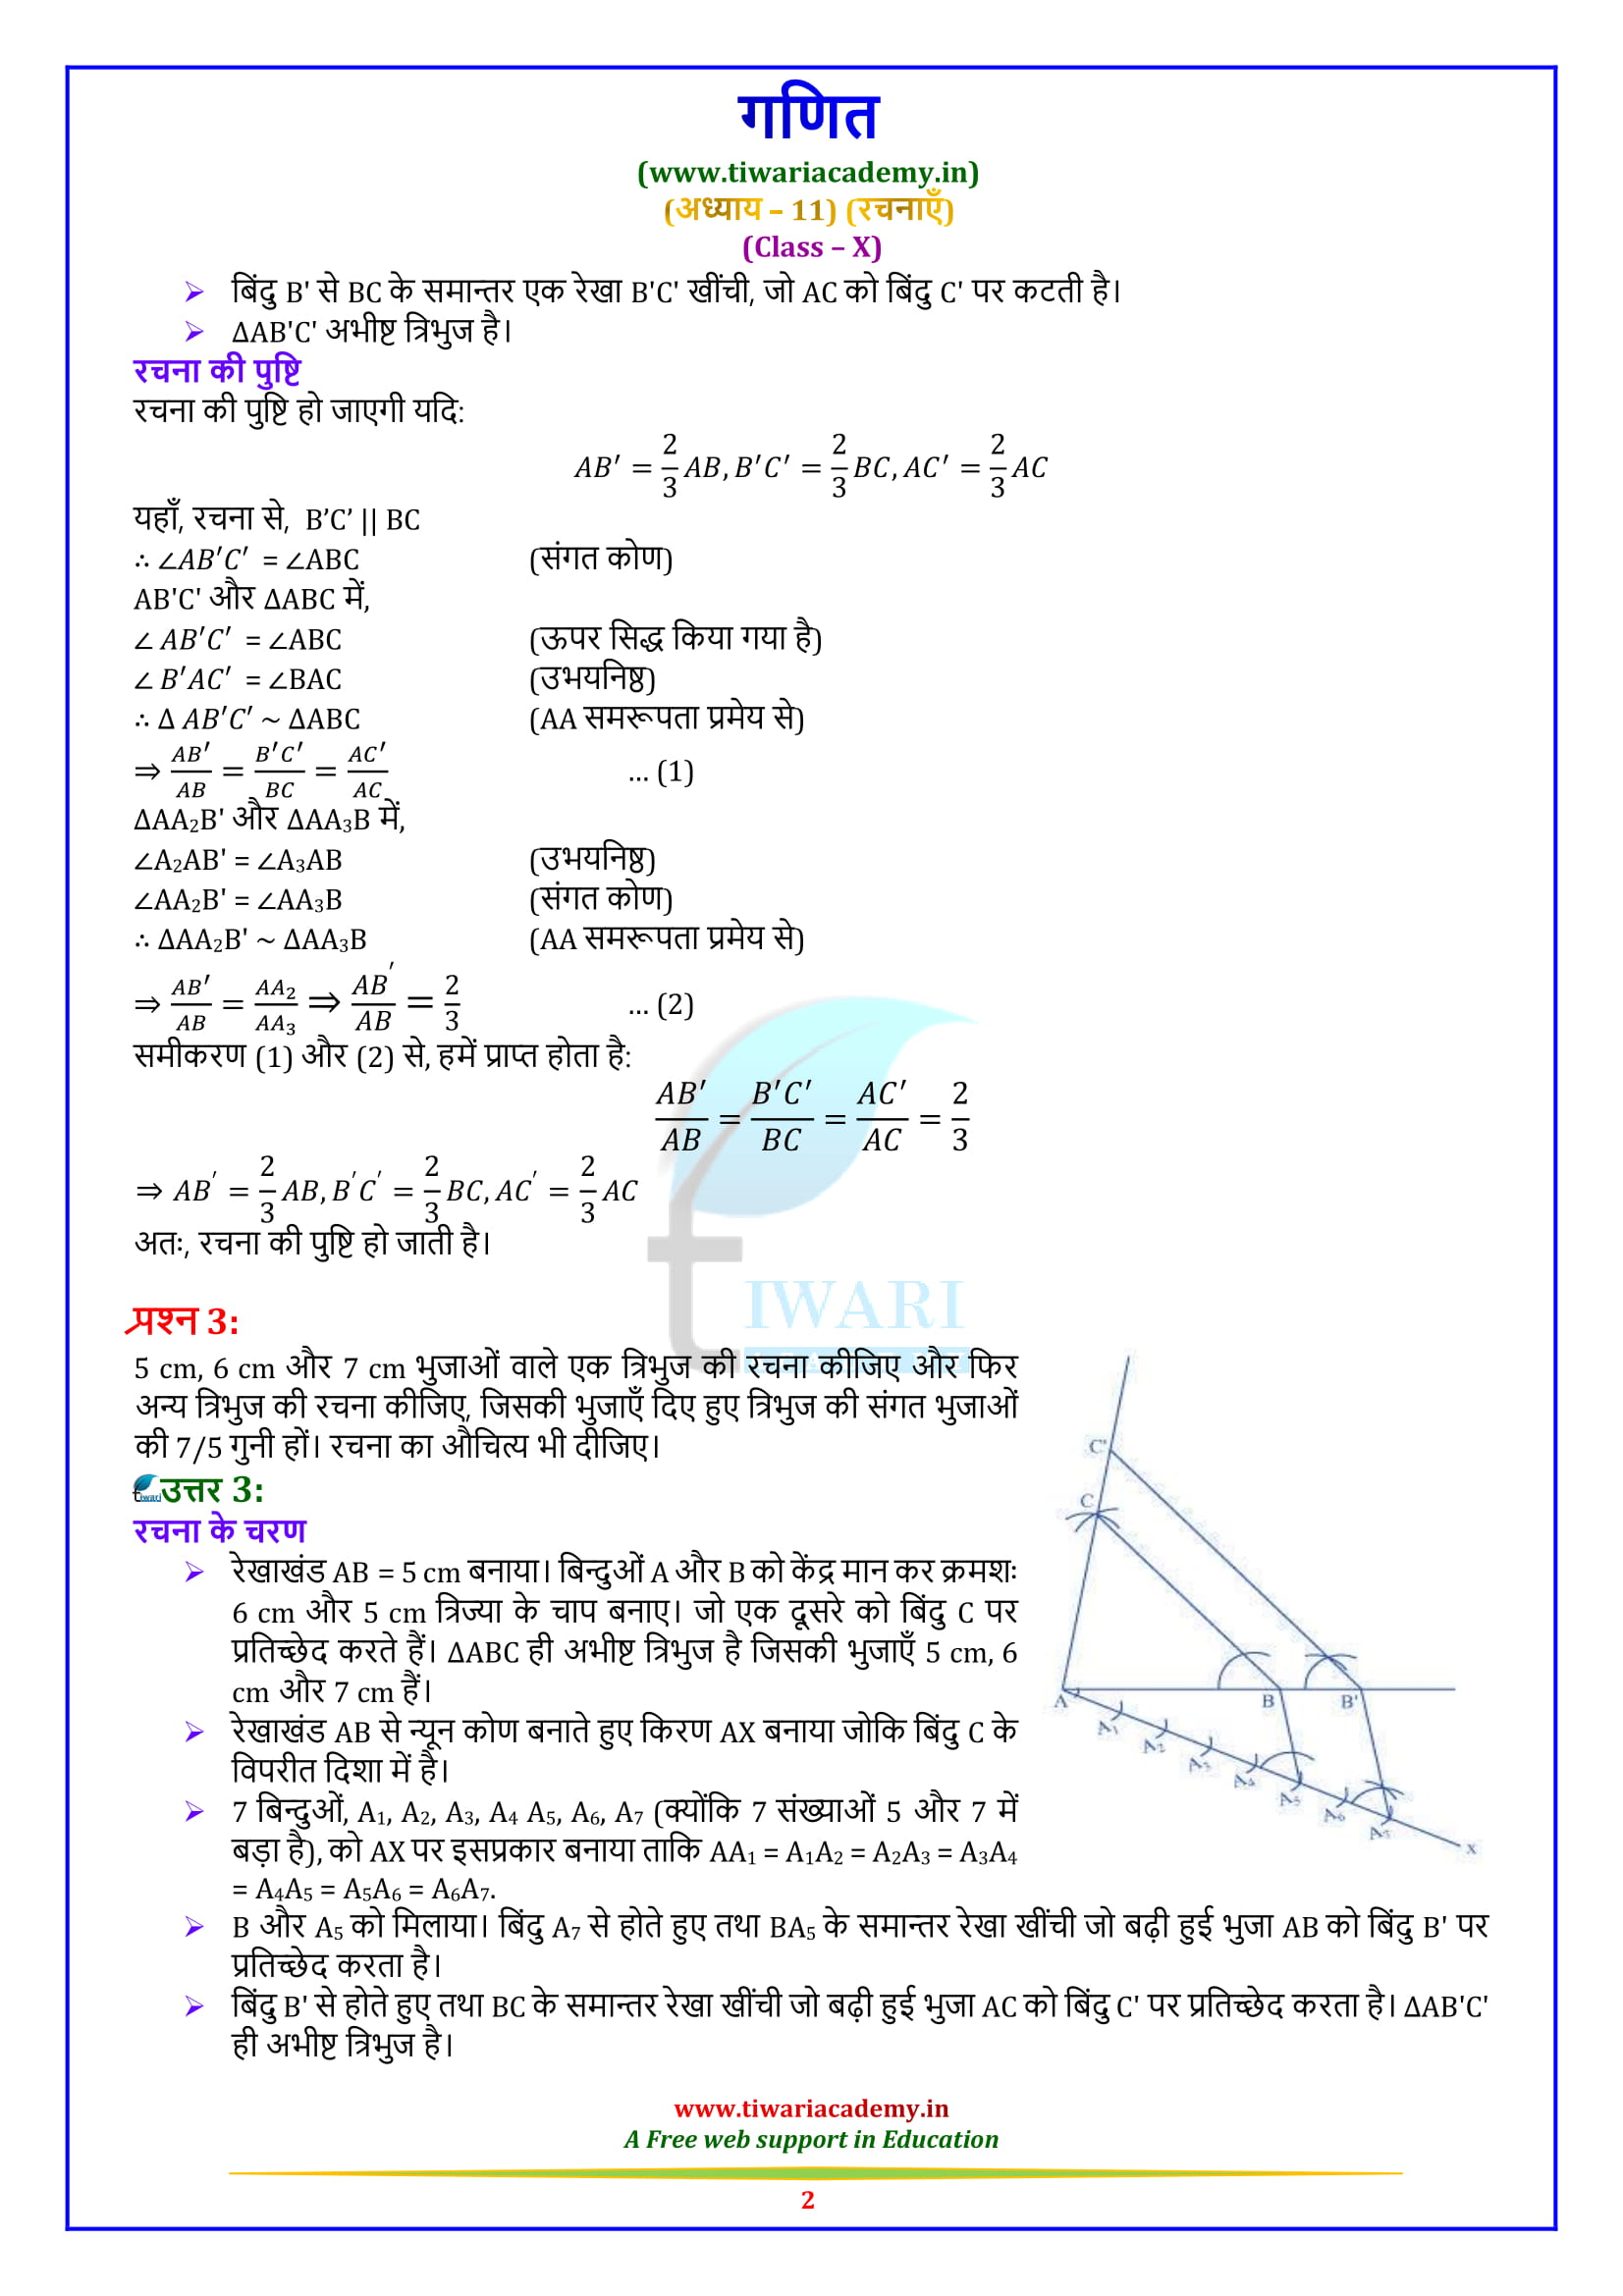 Class 10 Maths Exercise 11.1 solutions all question in hindi